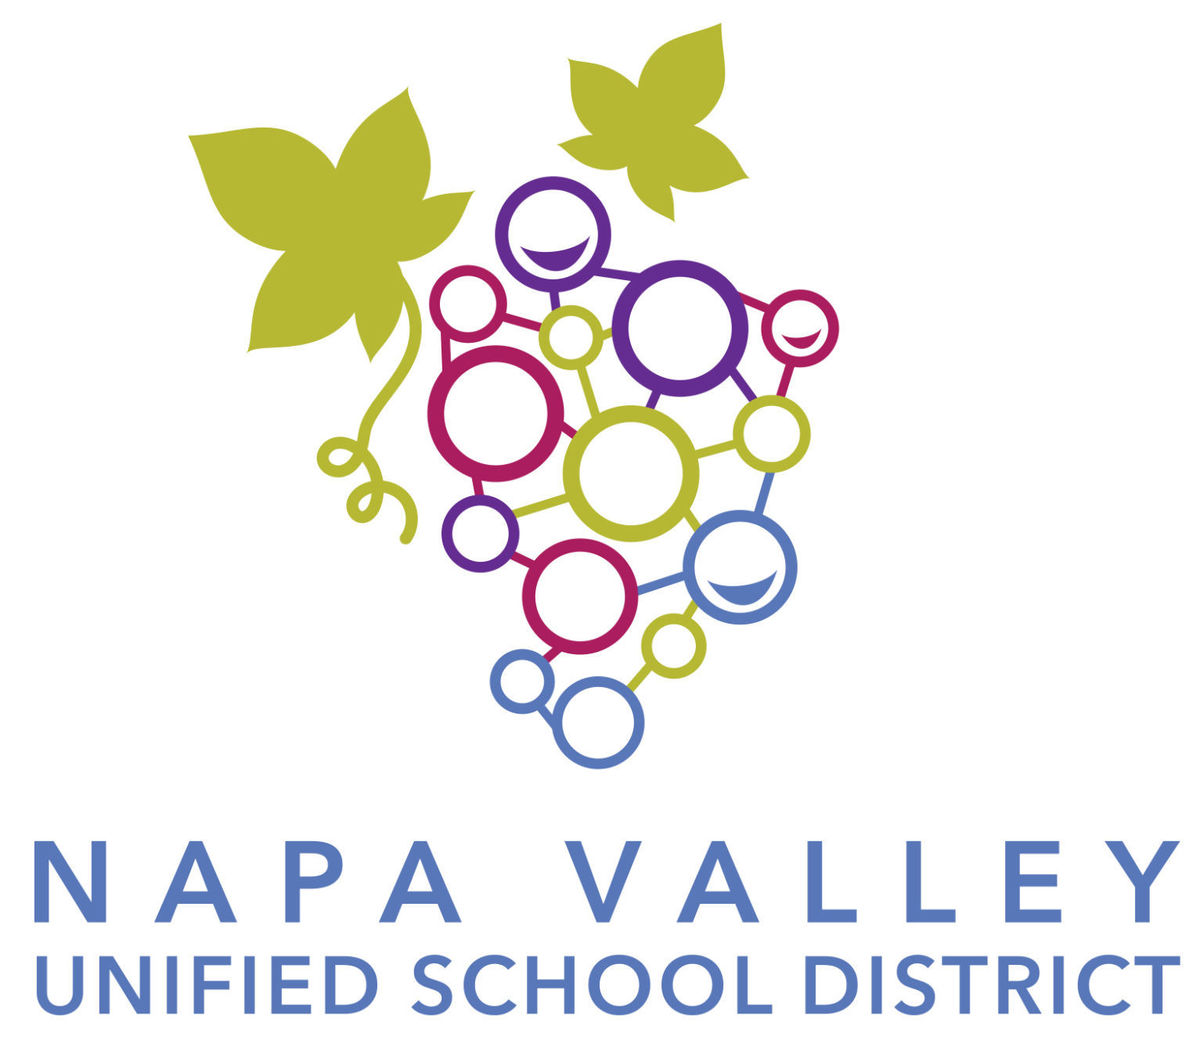 Log of Napa Valley Unified School district where Tom Kensok is a member of the school board of napa and practices school law as a member of the napa school board this is the board logo and links to his bio